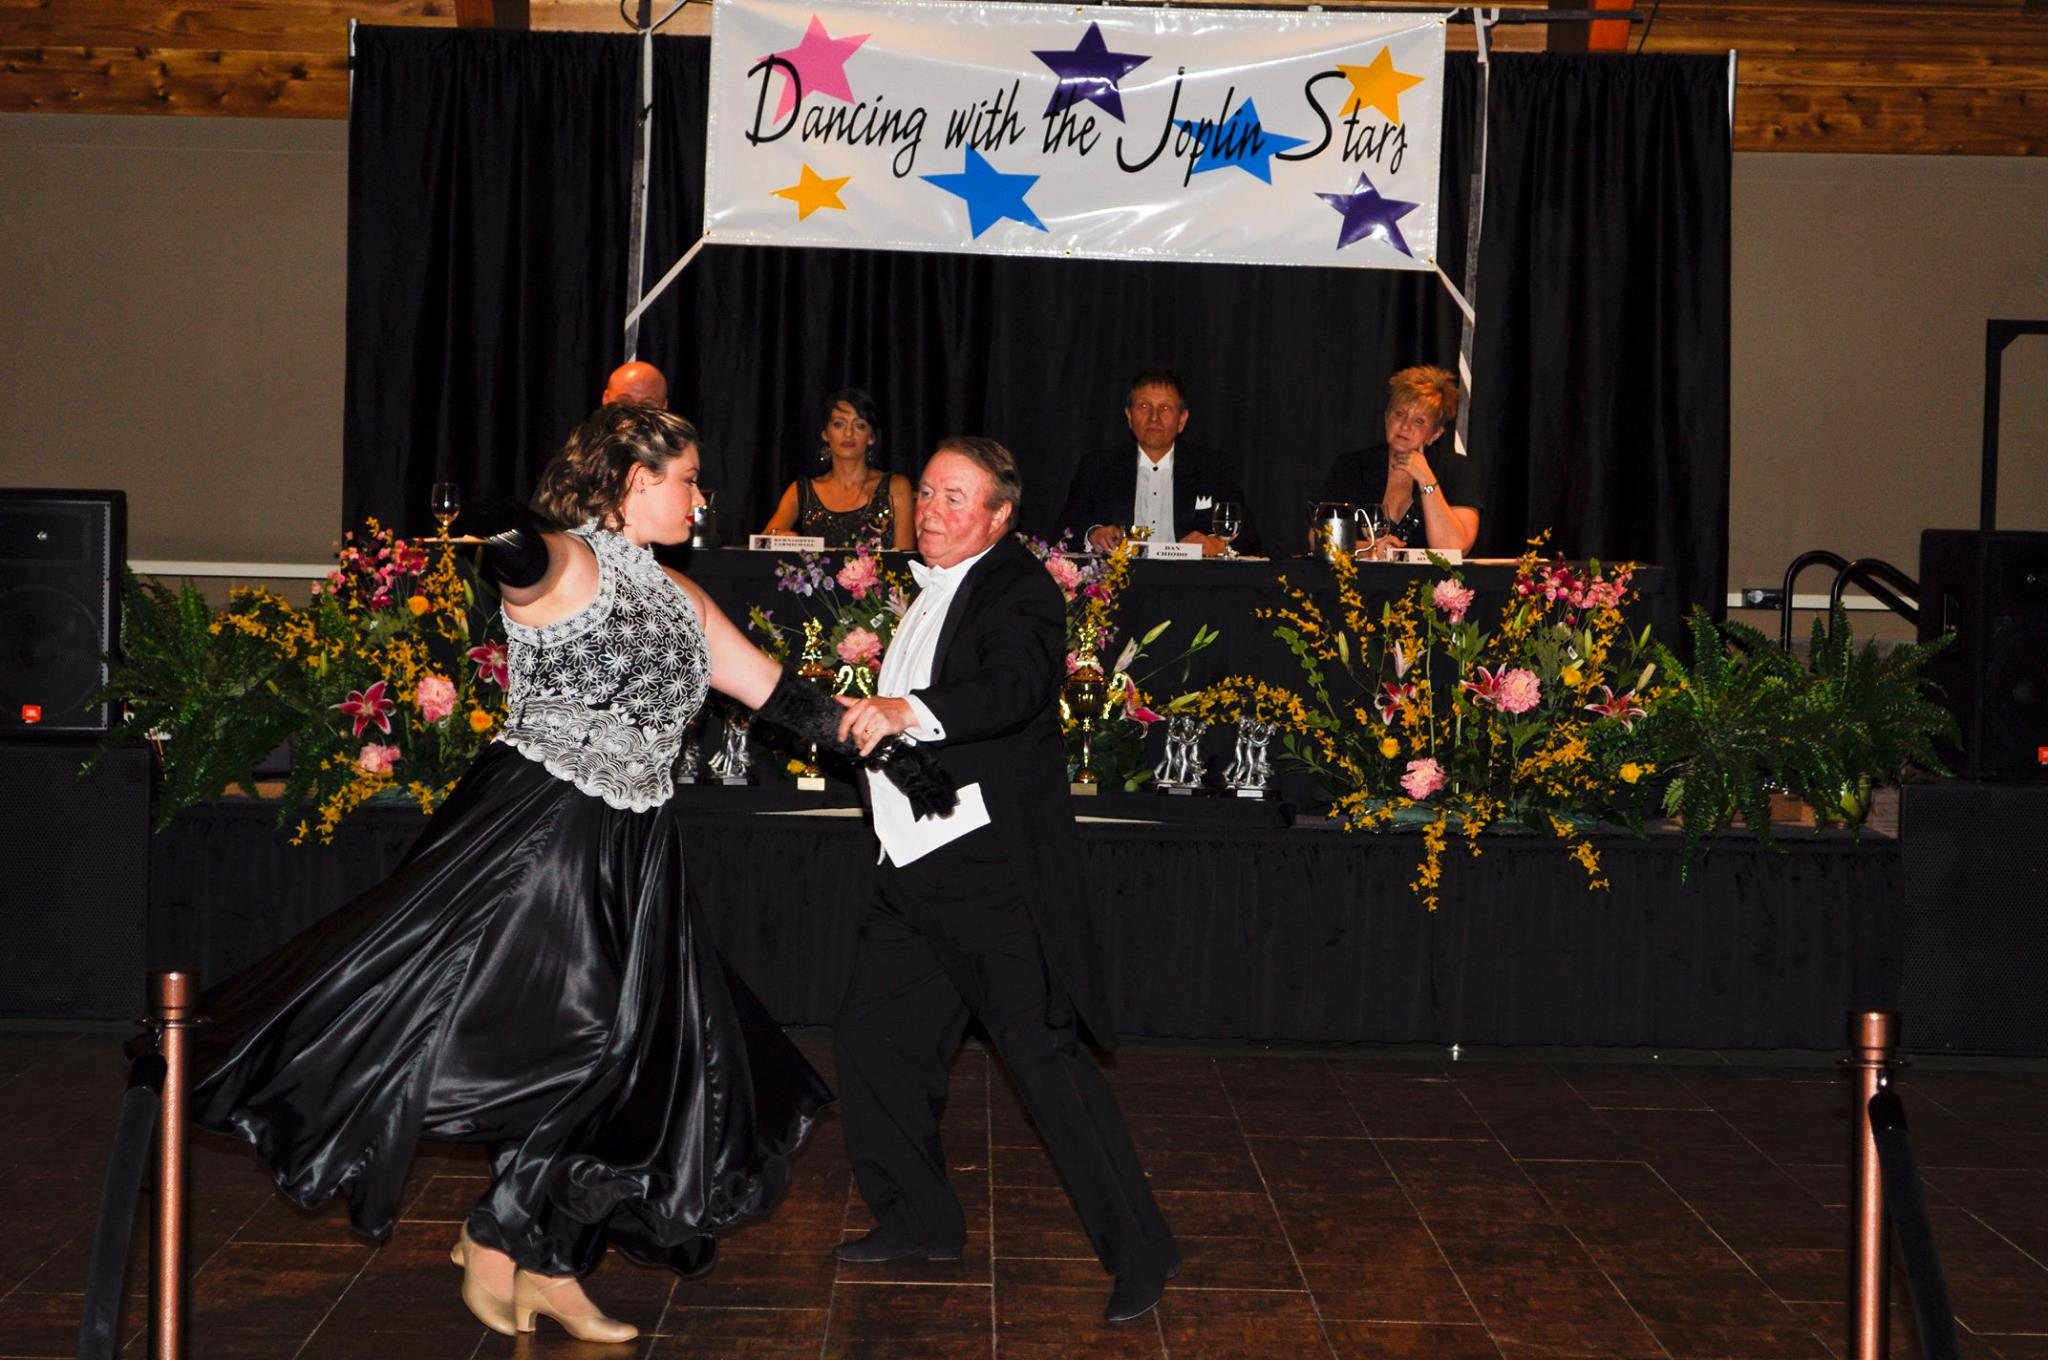 Mass comm students provide coverage for 'Dancing with the Joplin Stars'